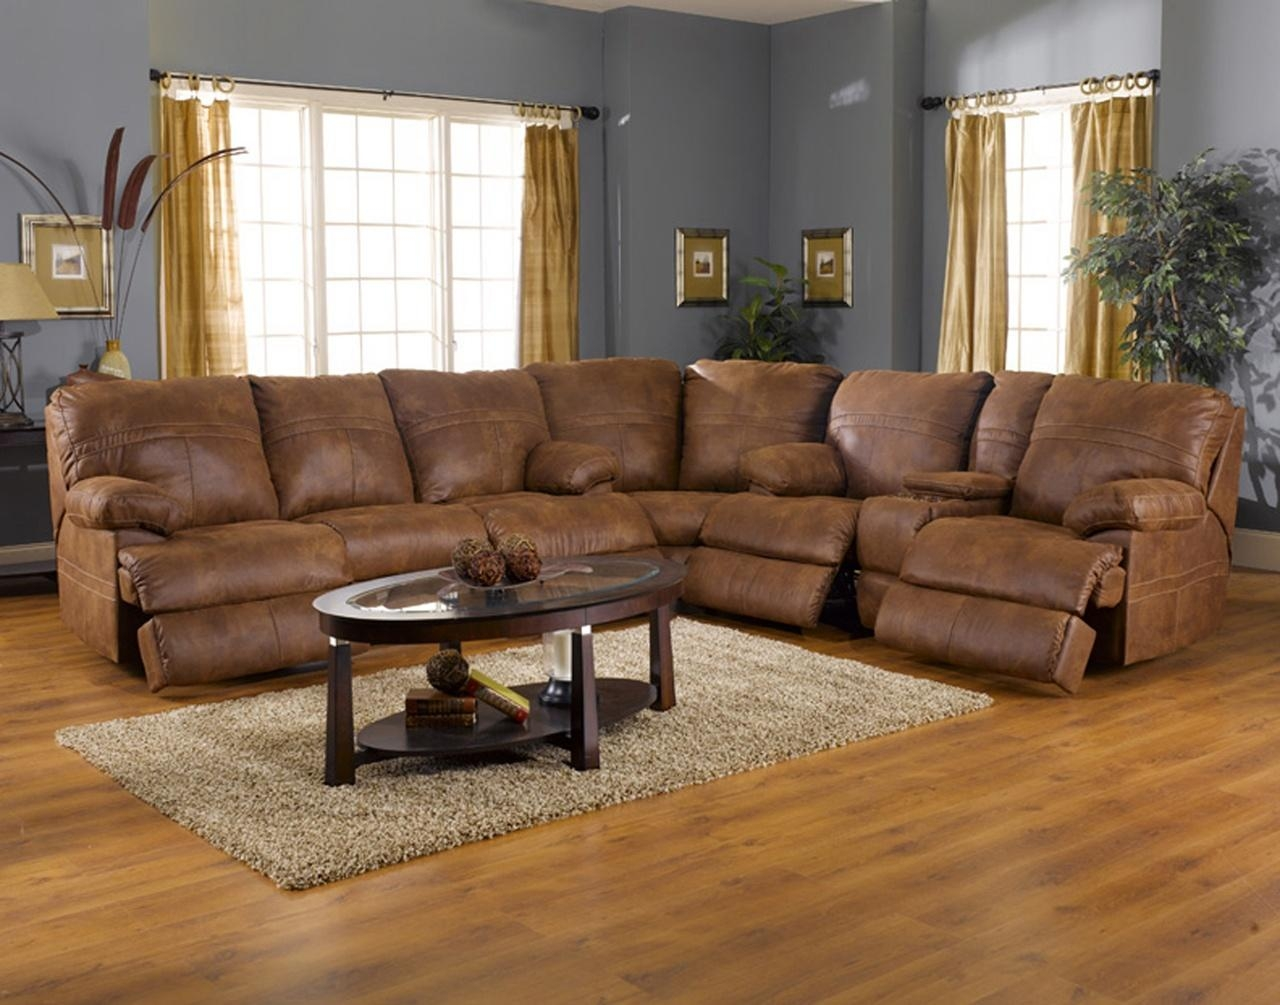 Leather Reclining Sectional Sofa Bed – Reclining Sectional Sofas In Recliner Sectional Sofas (View 12 of 22)